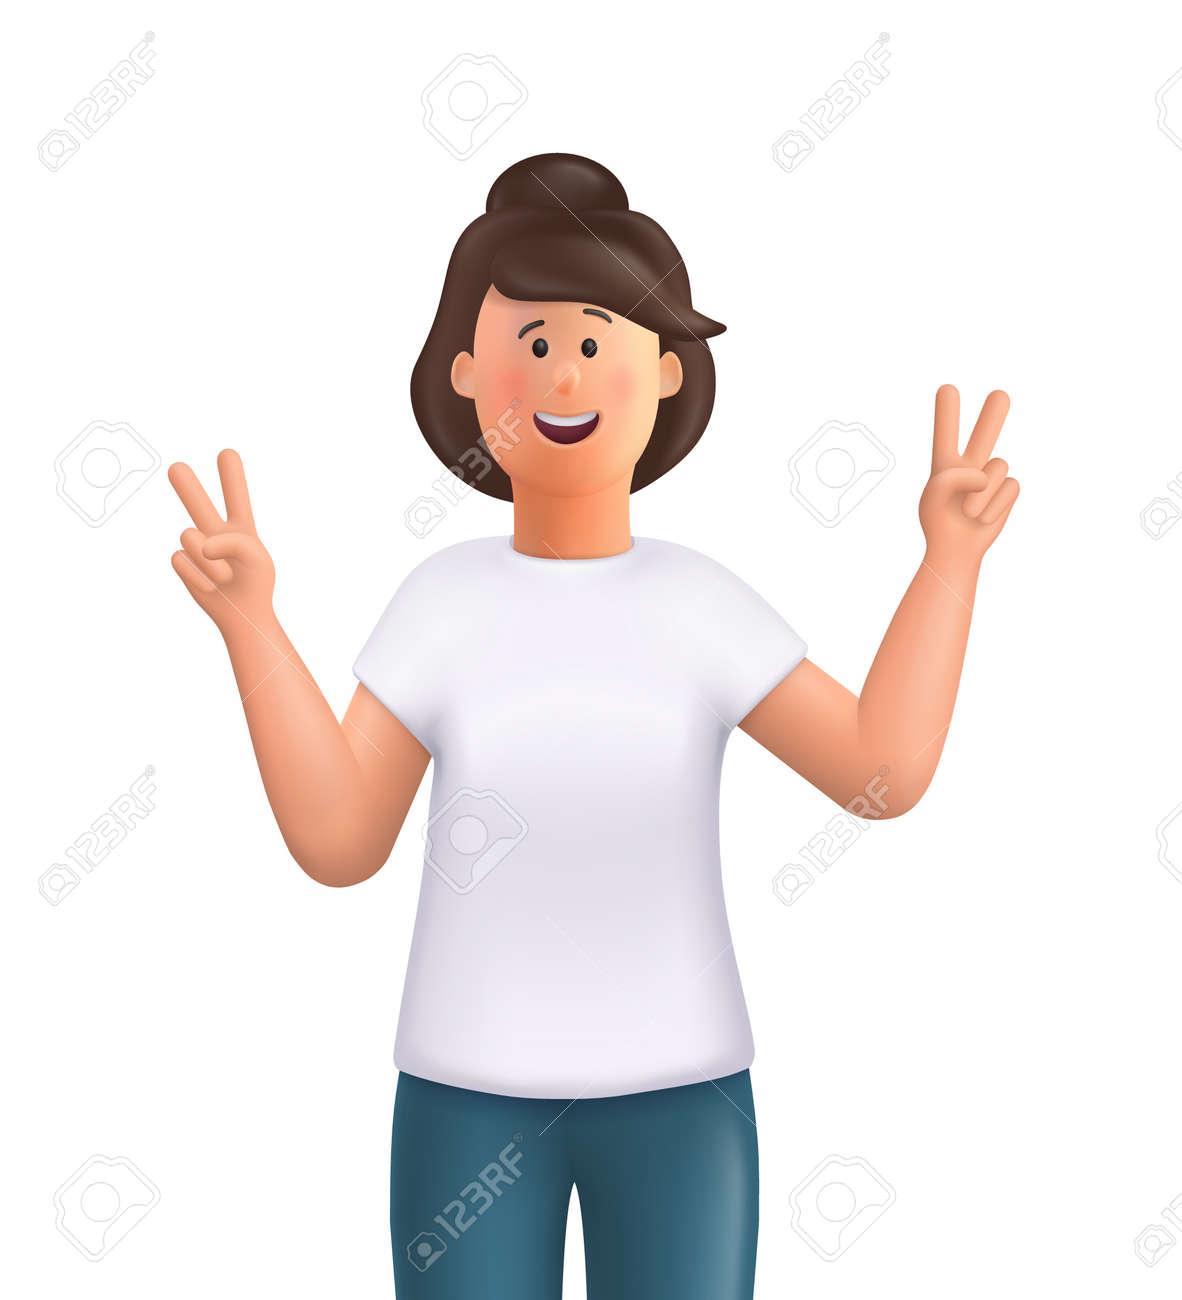 Young woman Jane showing victory fingers sign. Positive emotions with gestures - victory symbol, peace hand. 3d vector people character illustration. - 168737130